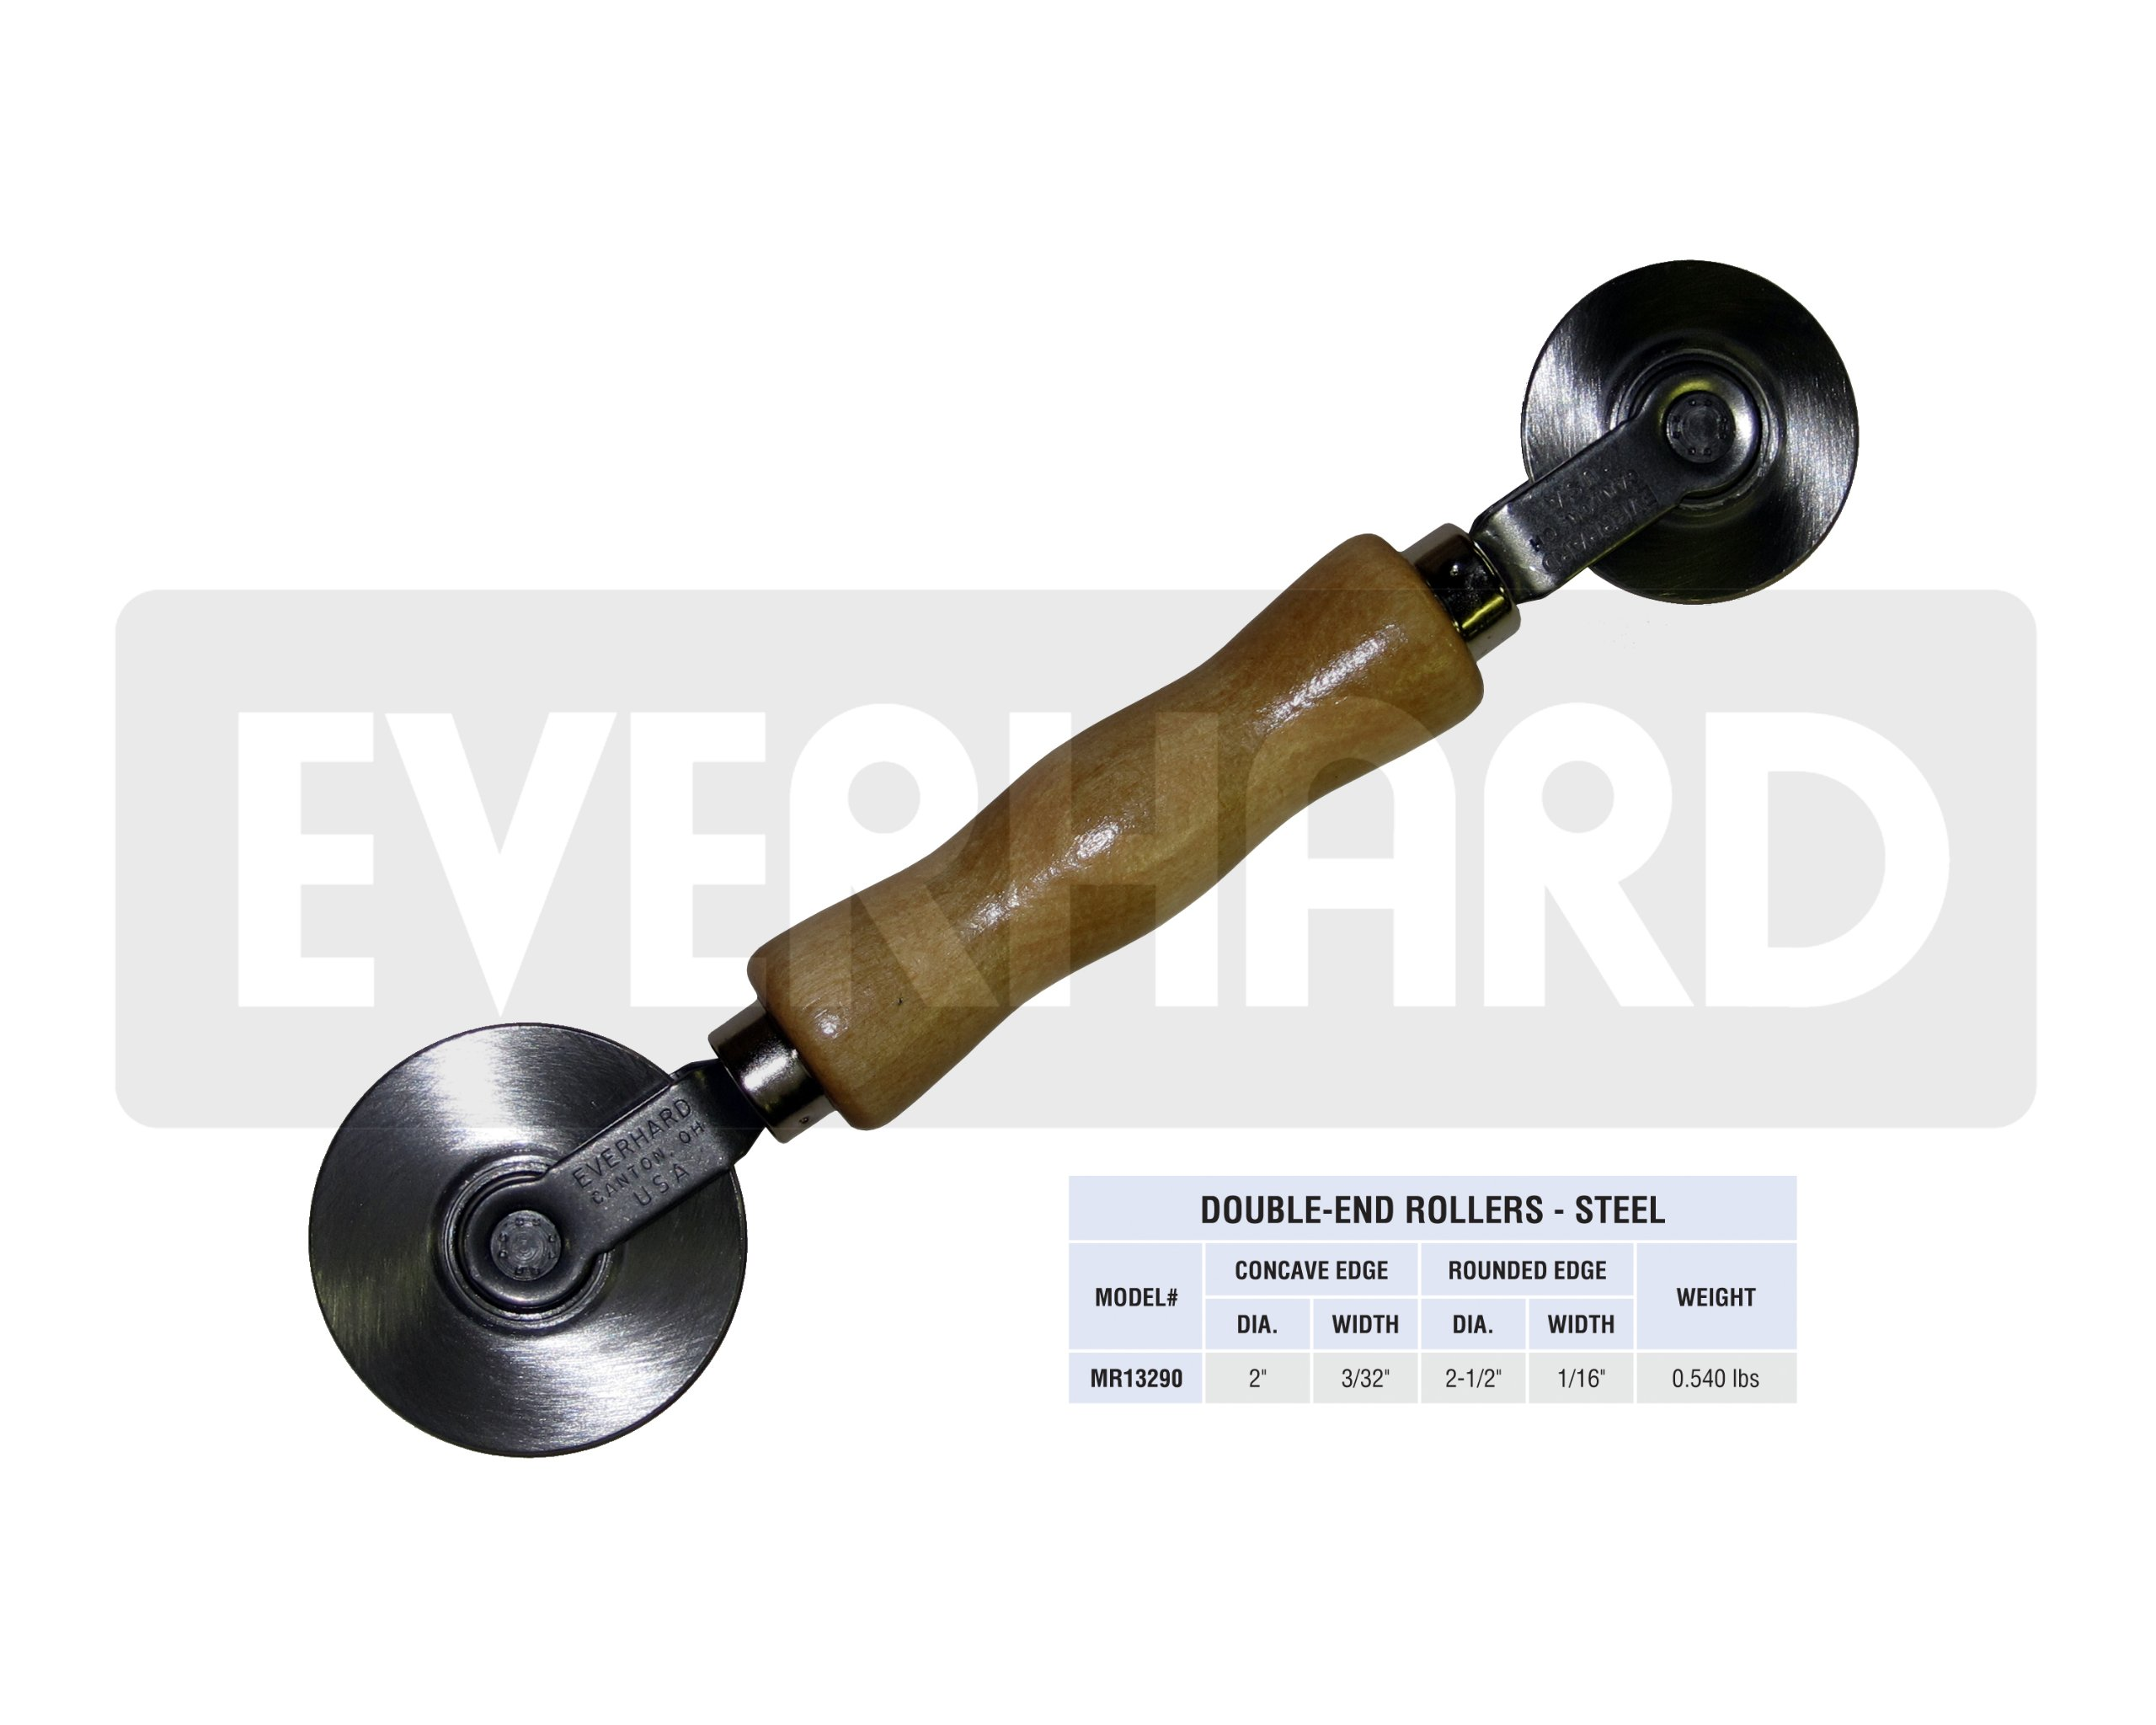 MR13290 Everhard Steel Double-end Screen Roller, Concave/Convex